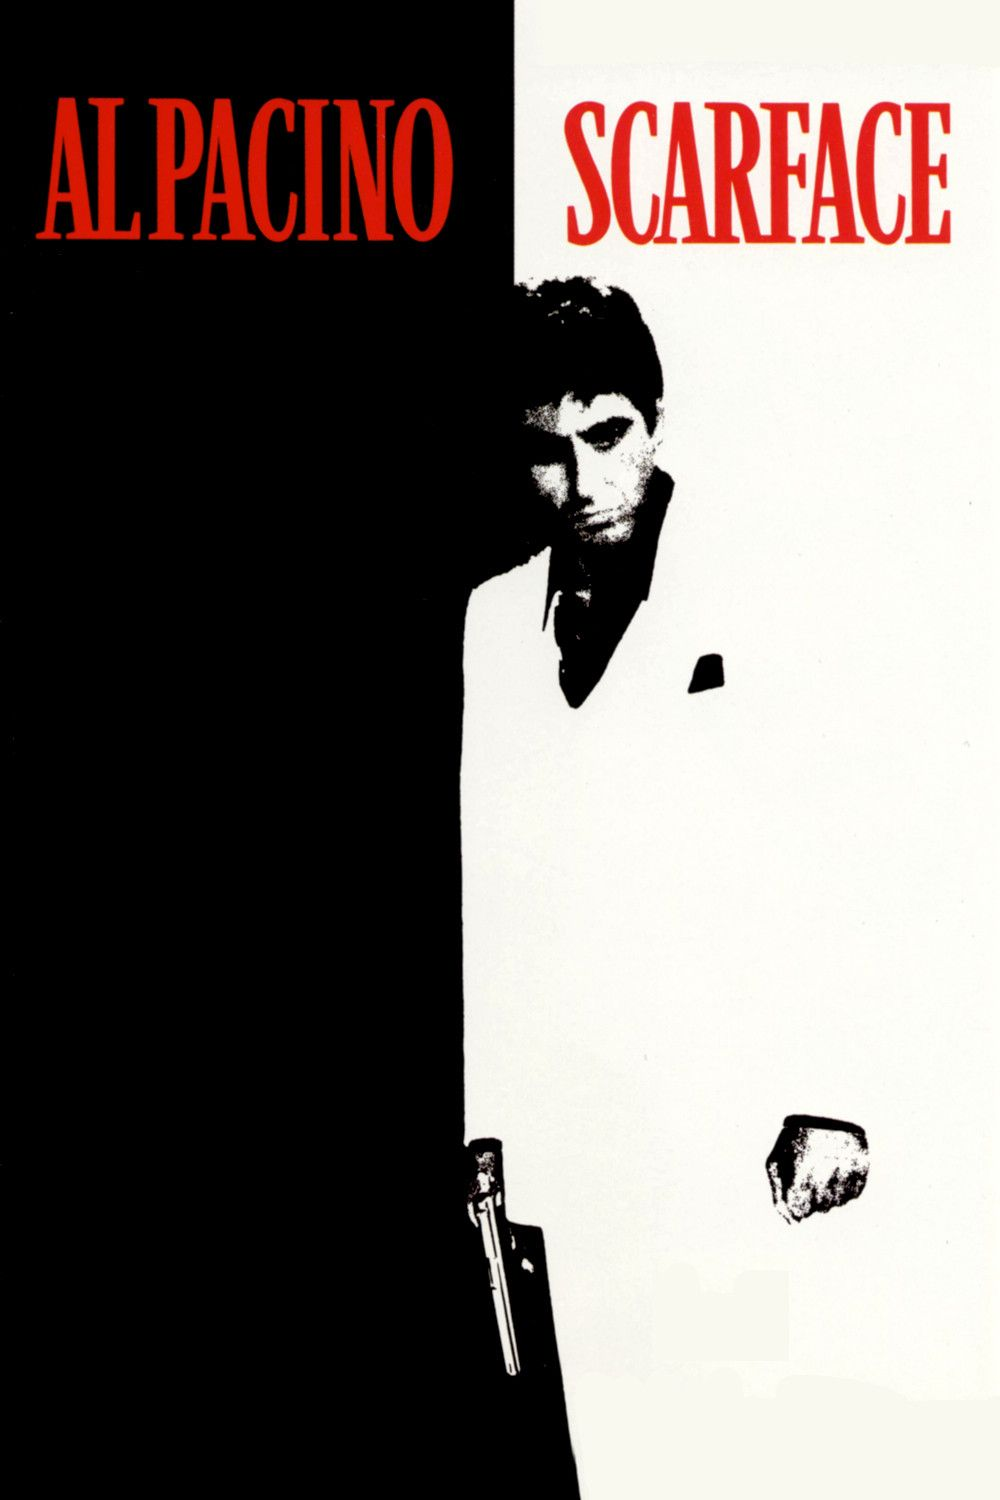 Scarface Posters Scarface Poster Movie Poster 10 Celebrity And Movie Pictures Scarface Movie Gangster Movies Scarface